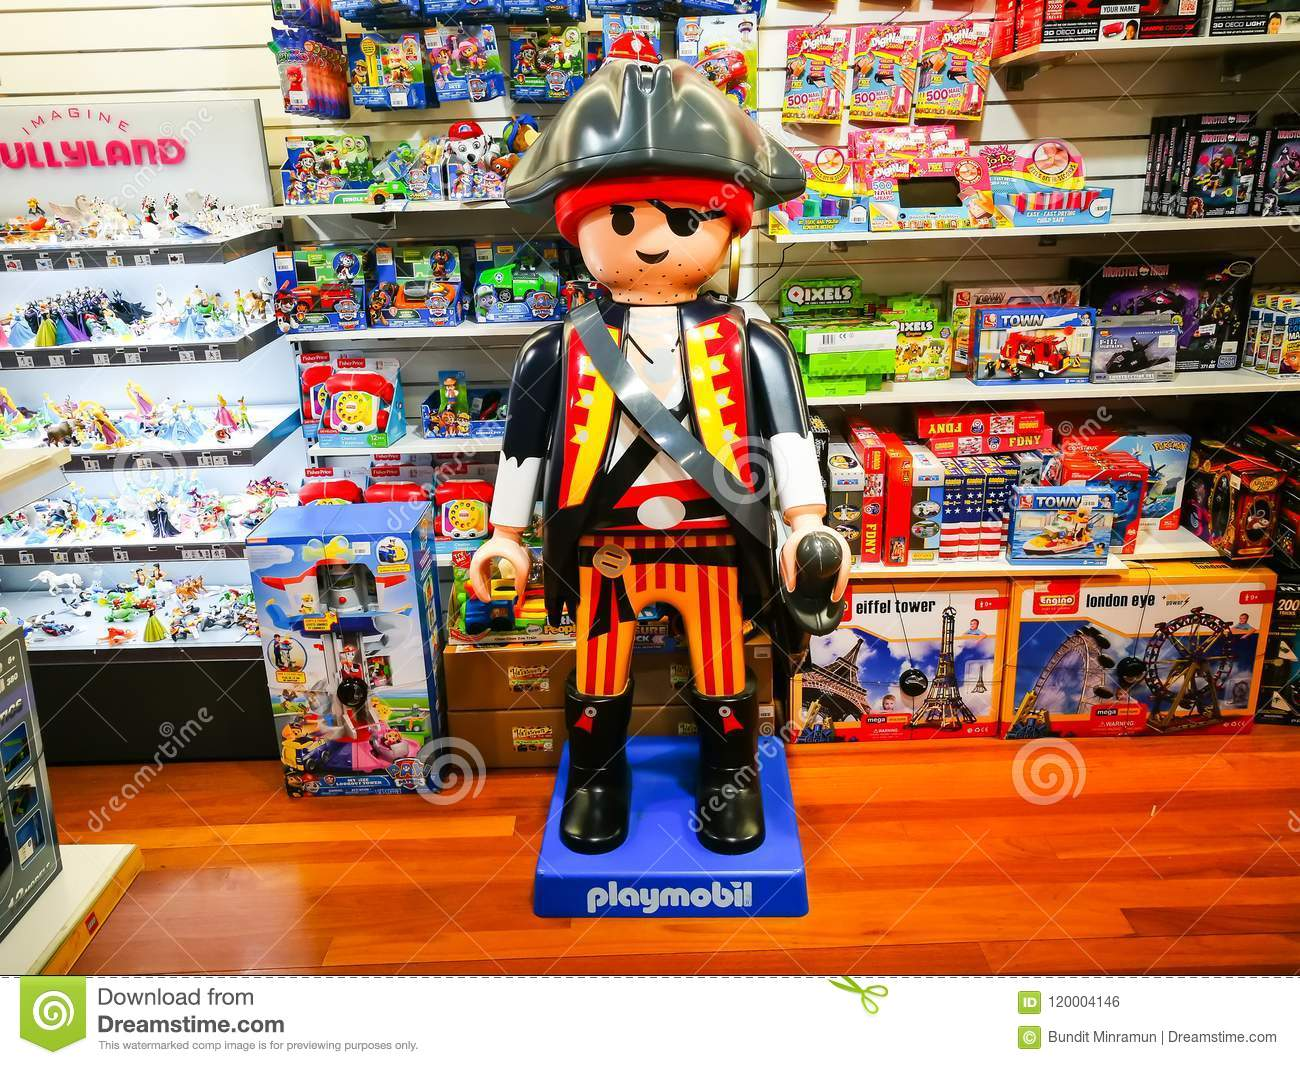 Playmobil In Big Size With Pirate Version Display At Toy Retail